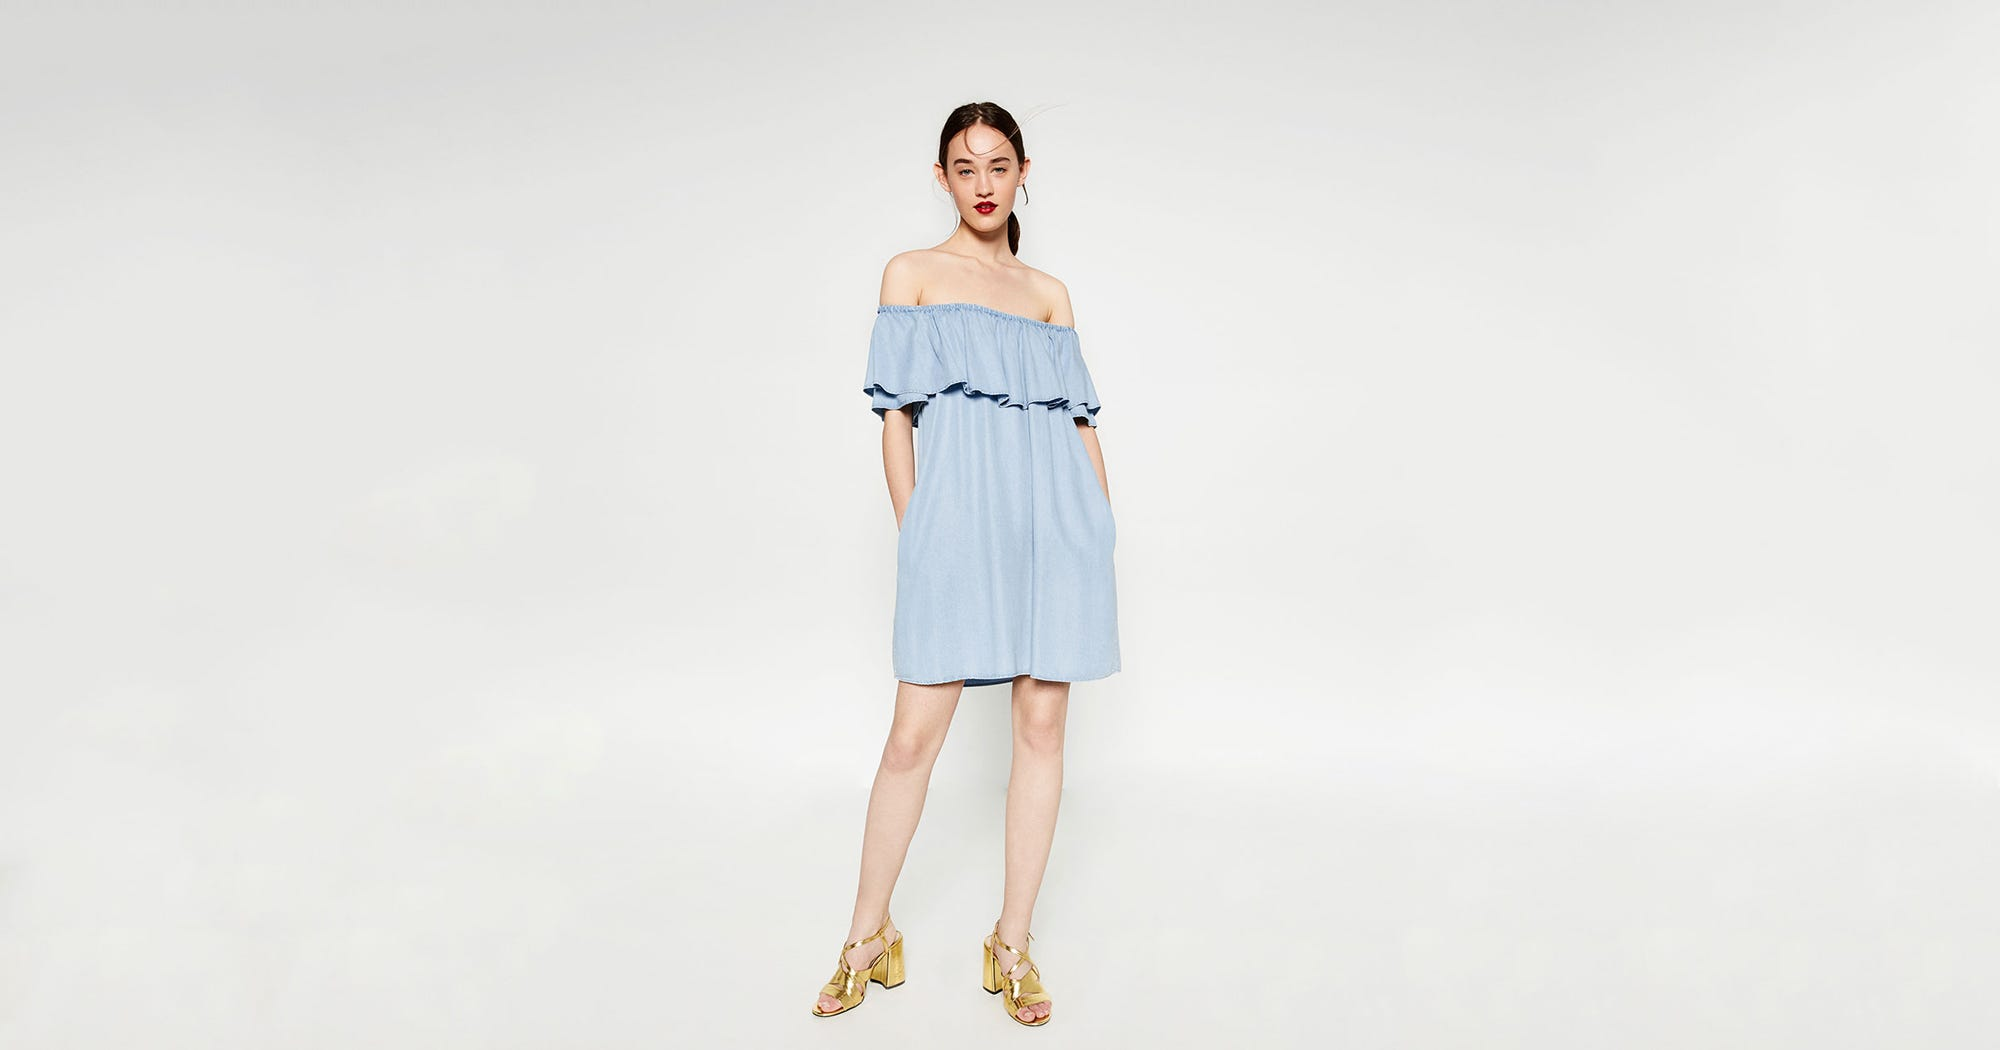 f785ecce52c Zara Popular Dress Funny Blog Off The Shoulder Trend